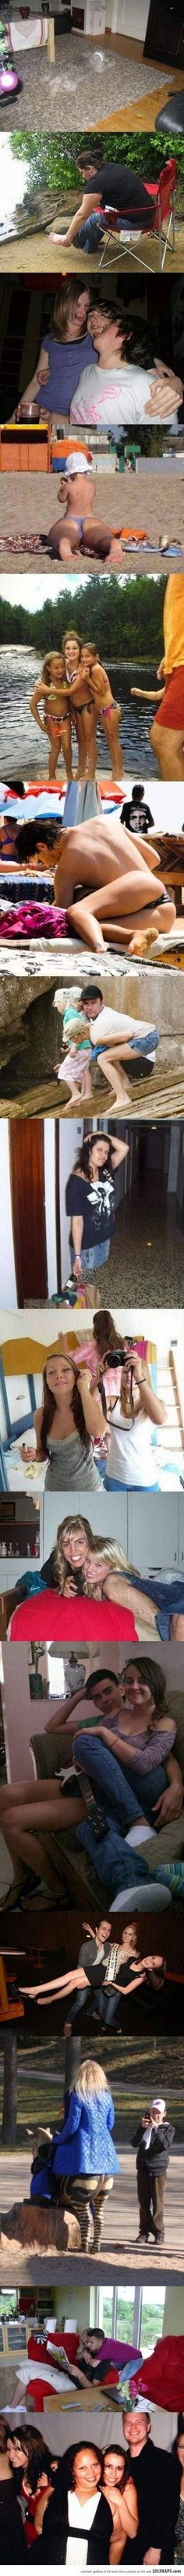 Camera Angles Make All The Difference